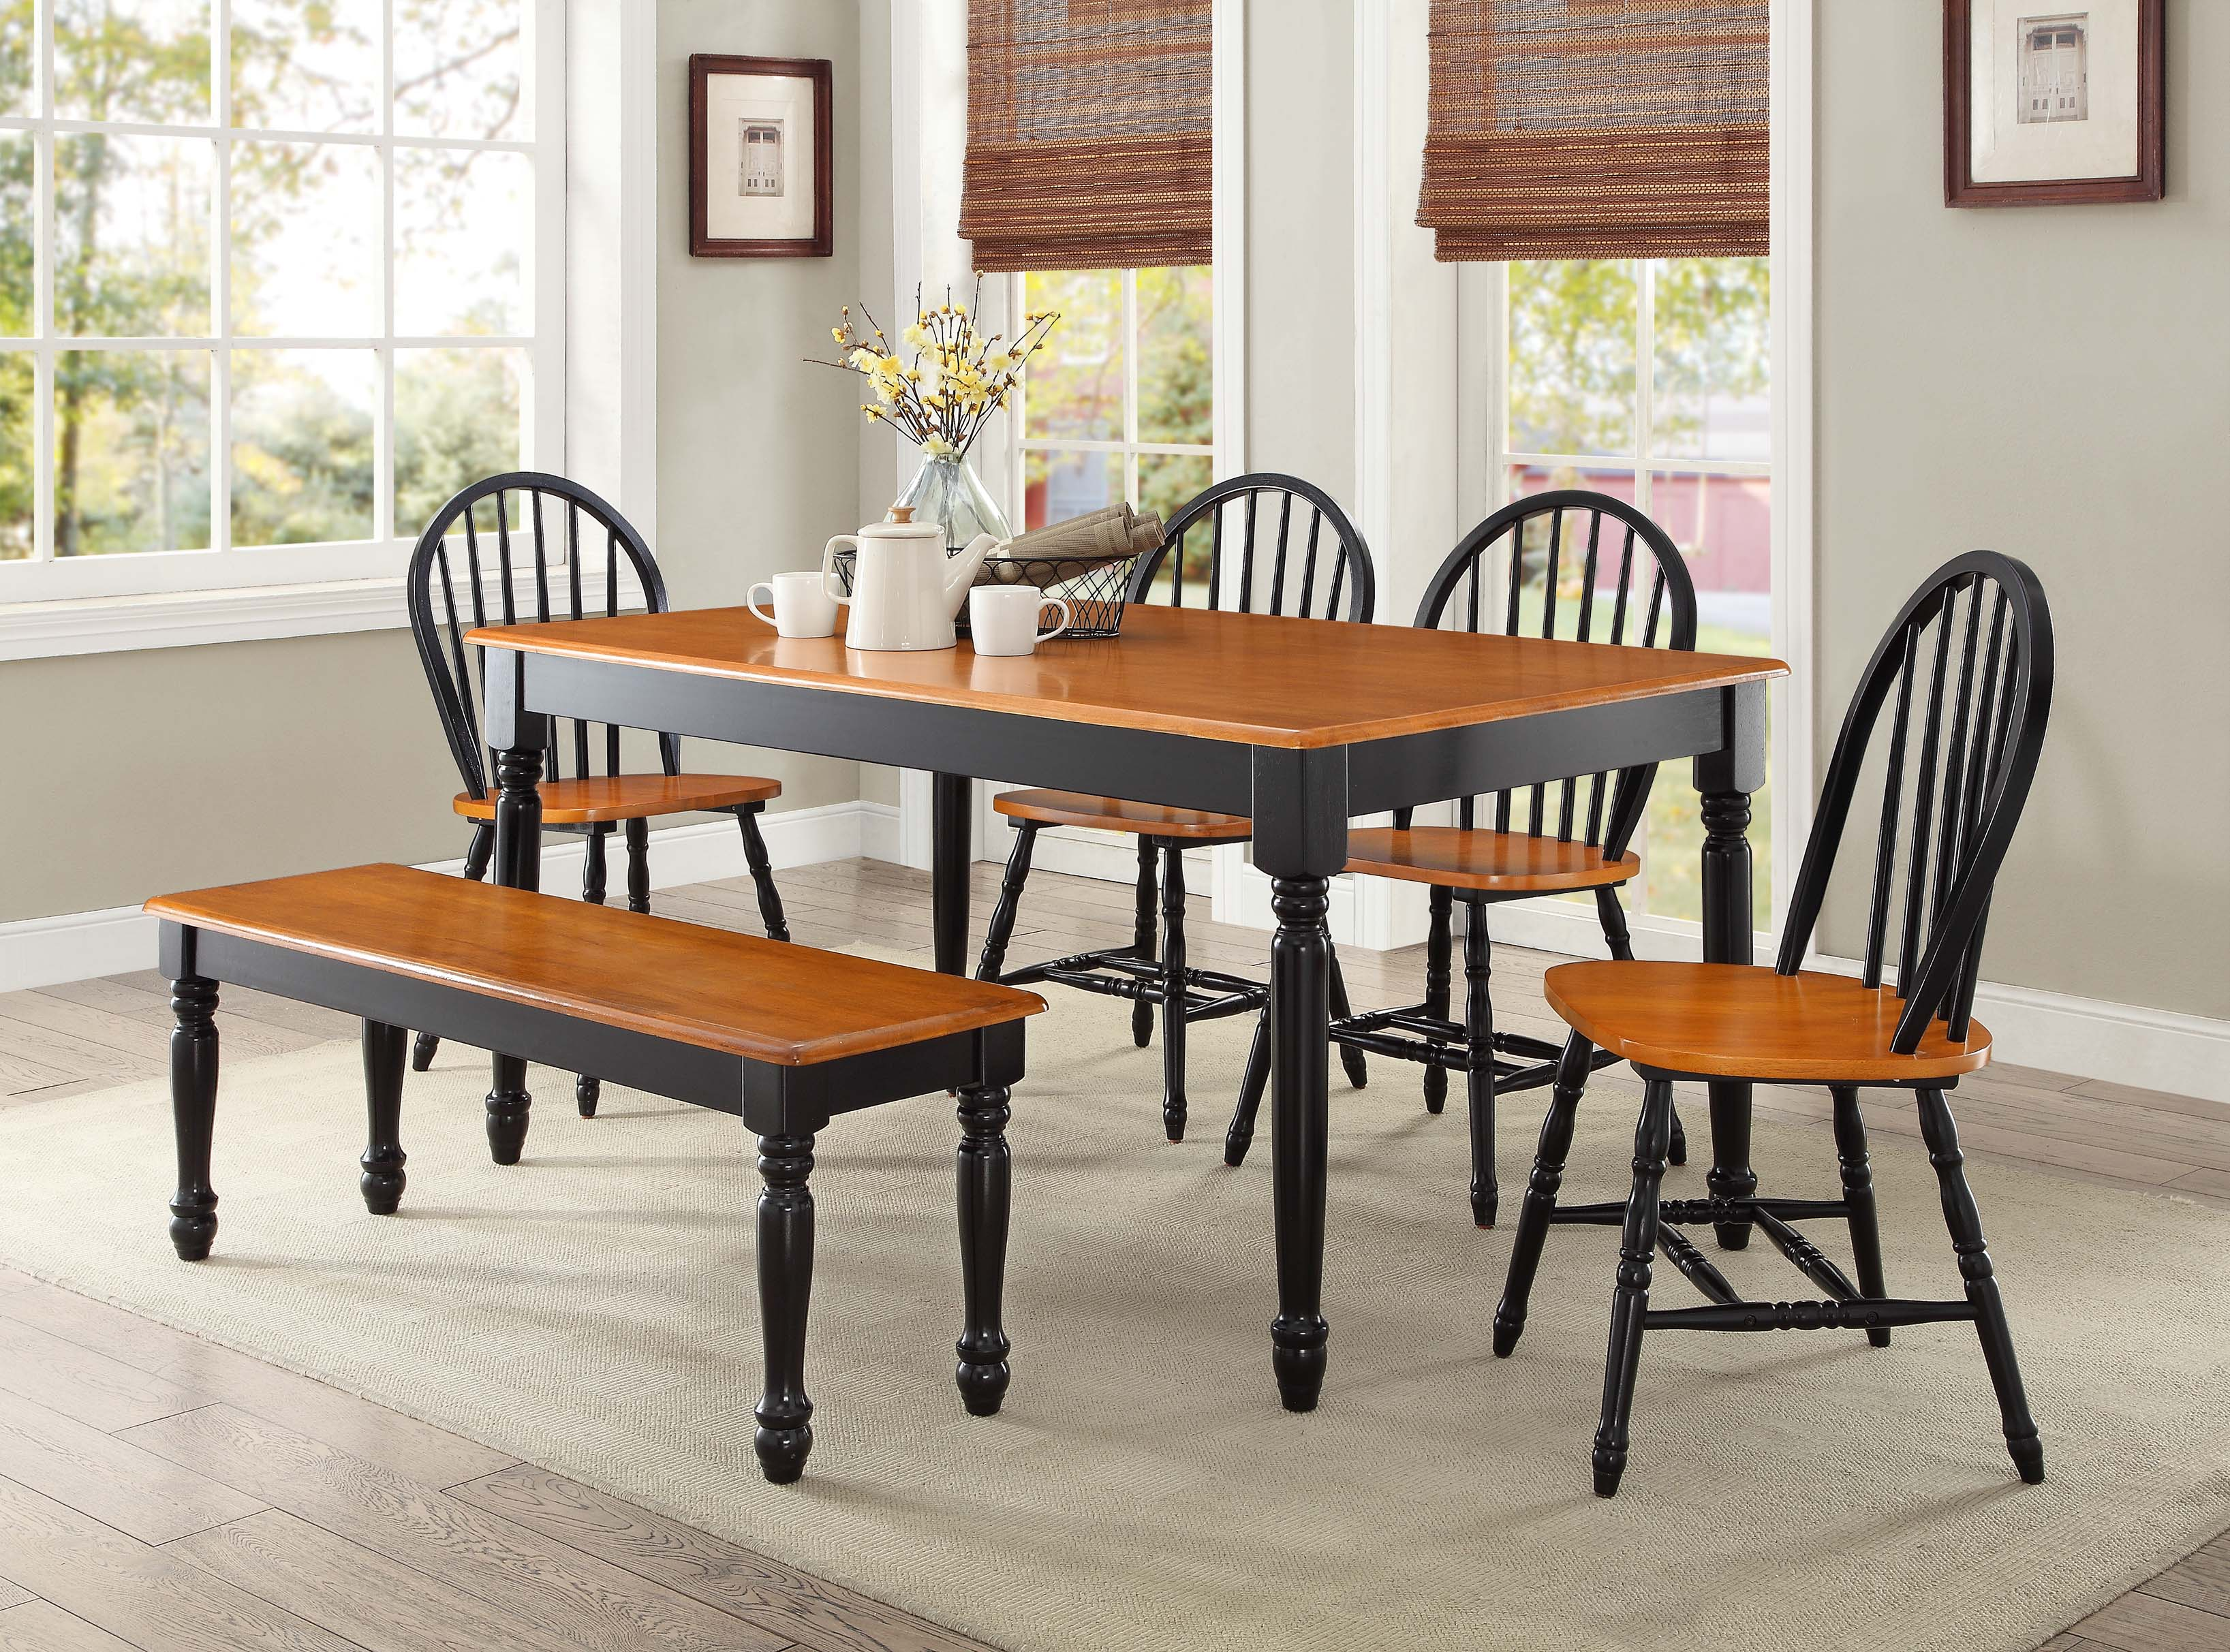 Dining Room Table Pictures Custom Kitchen & Dining Furniture  Walmart Design Inspiration